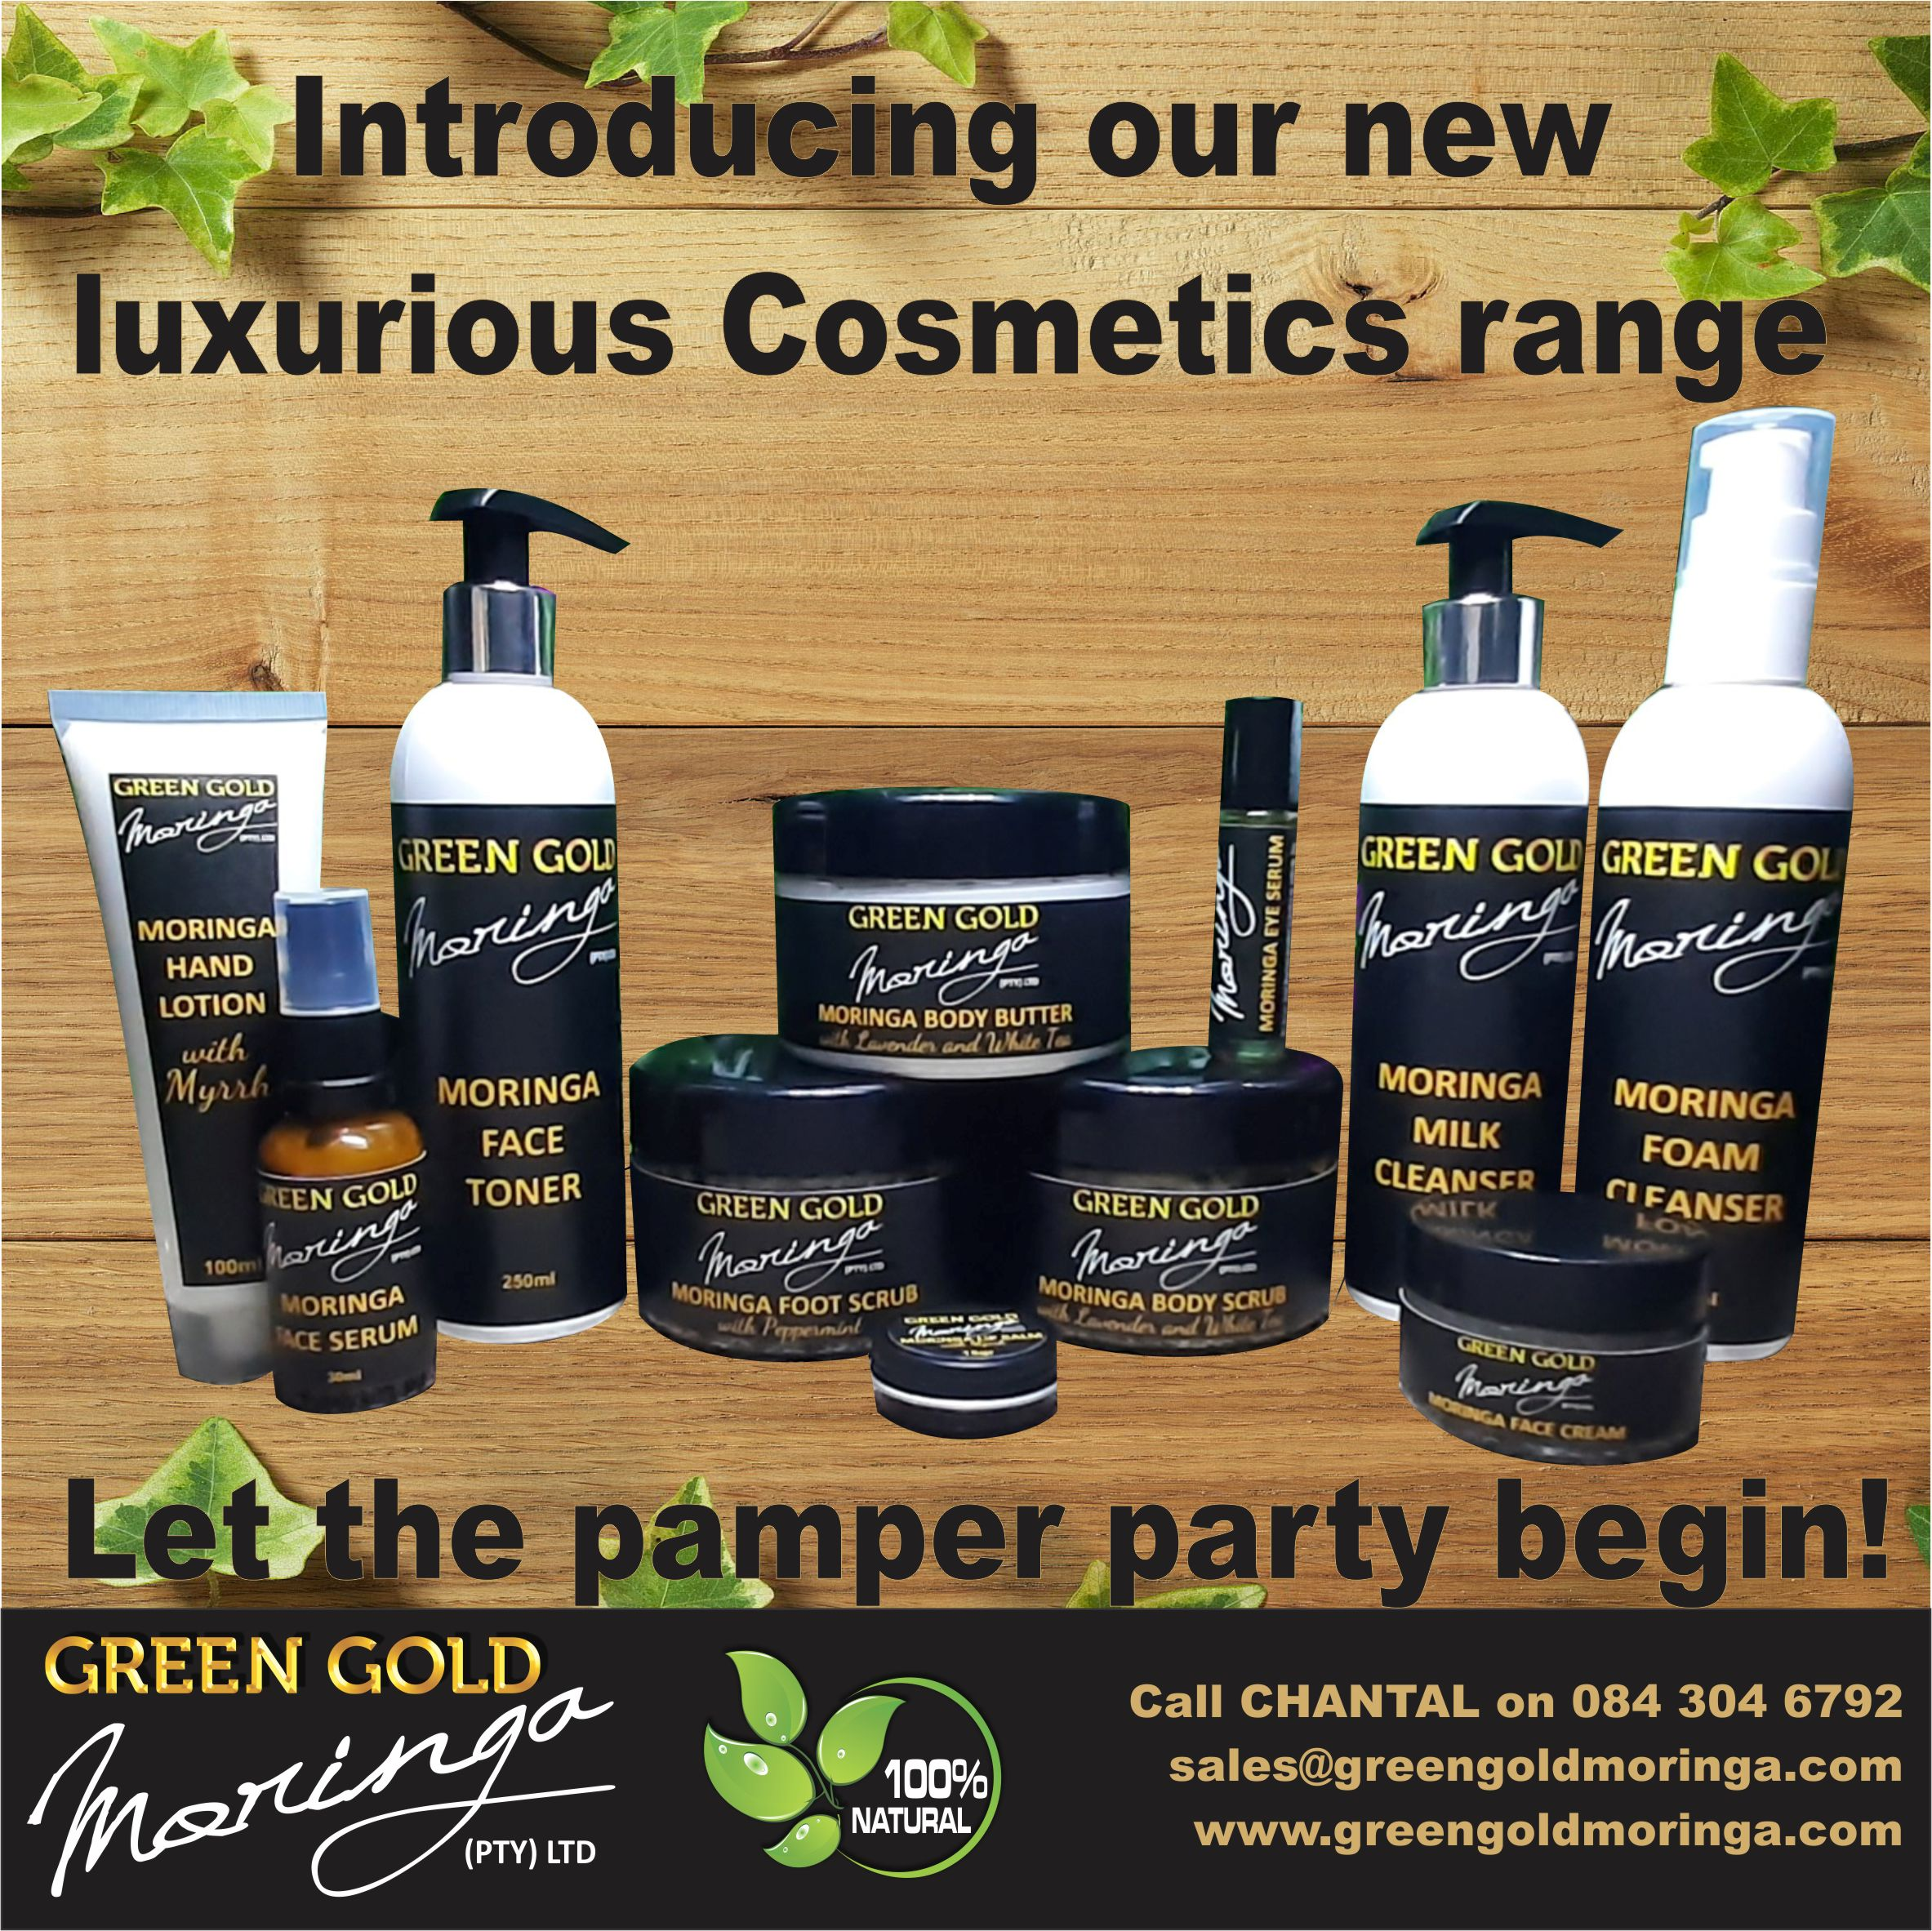 Introducing our NEW Luxurious Cosmetics range!